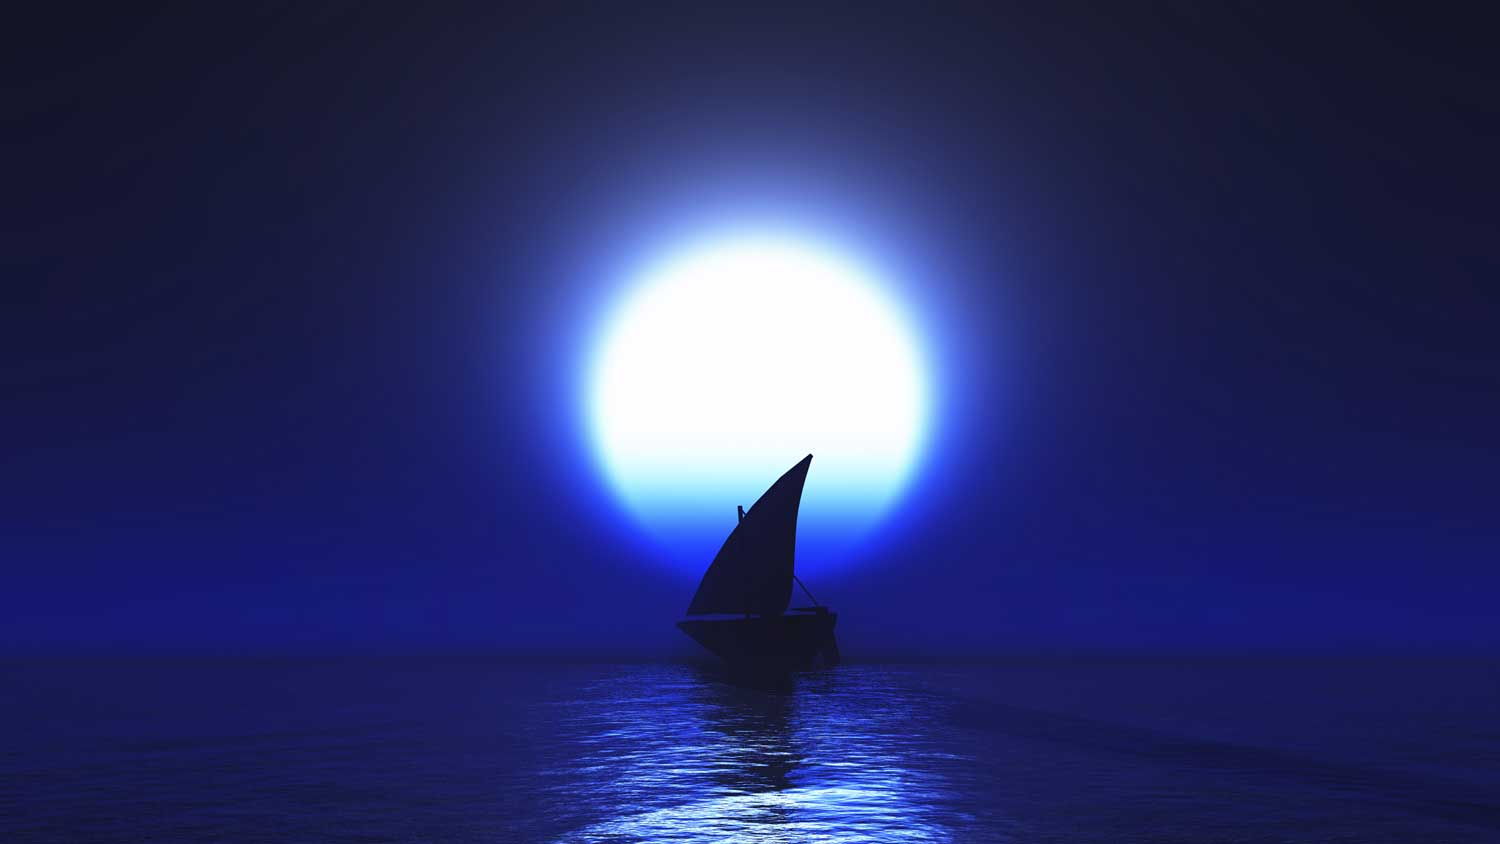 Let the Moon Fill Your Vessel